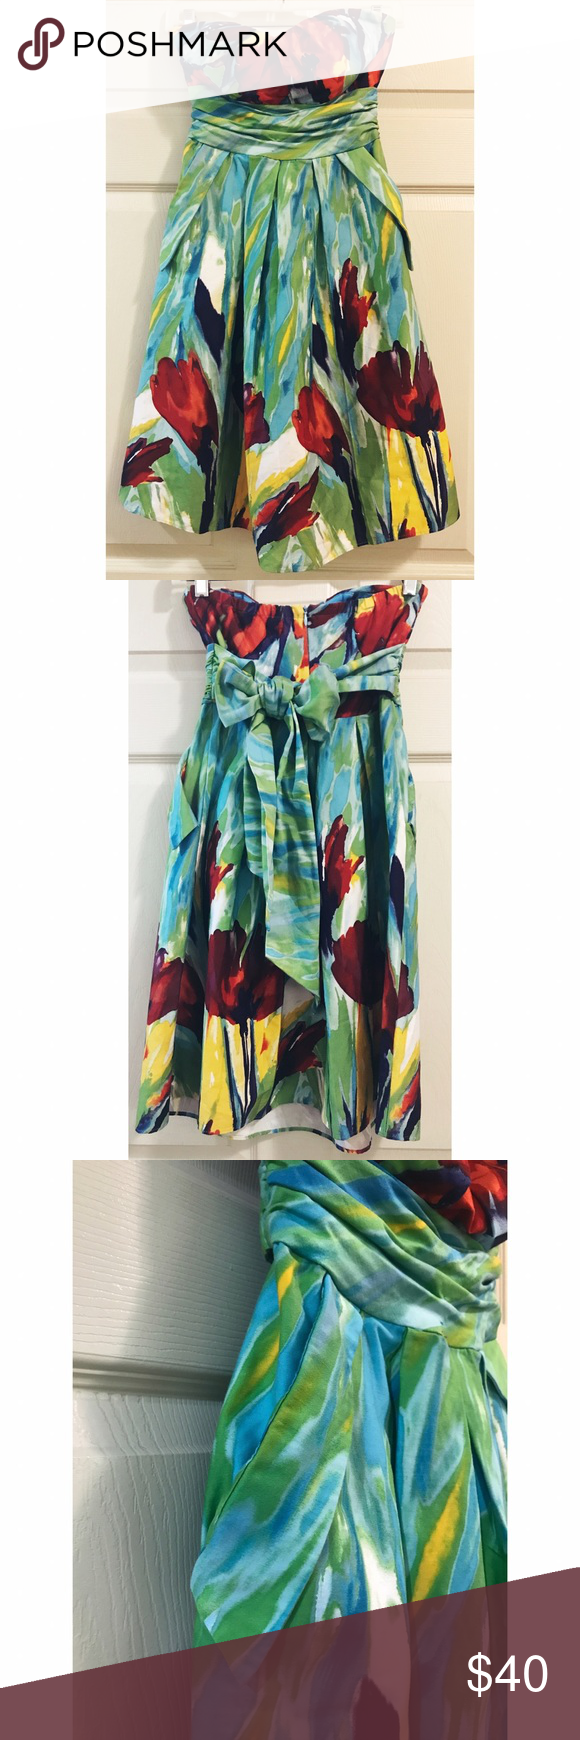 Sophia Christina • NWOT Dress Sophia Christina • NWOT Dress. Beautiful sweetheart neckline and bow back. Zips up in the back. Size 4. Cute flower design. Pockets, which are my favourite in dresses!   . . . . . Suggested Used! 💁🏼 Non-Smoking Household! 🌿 A passionate Posher! 👗 Make an Offer! 🛍 Sophia Christina Dresses Strapless